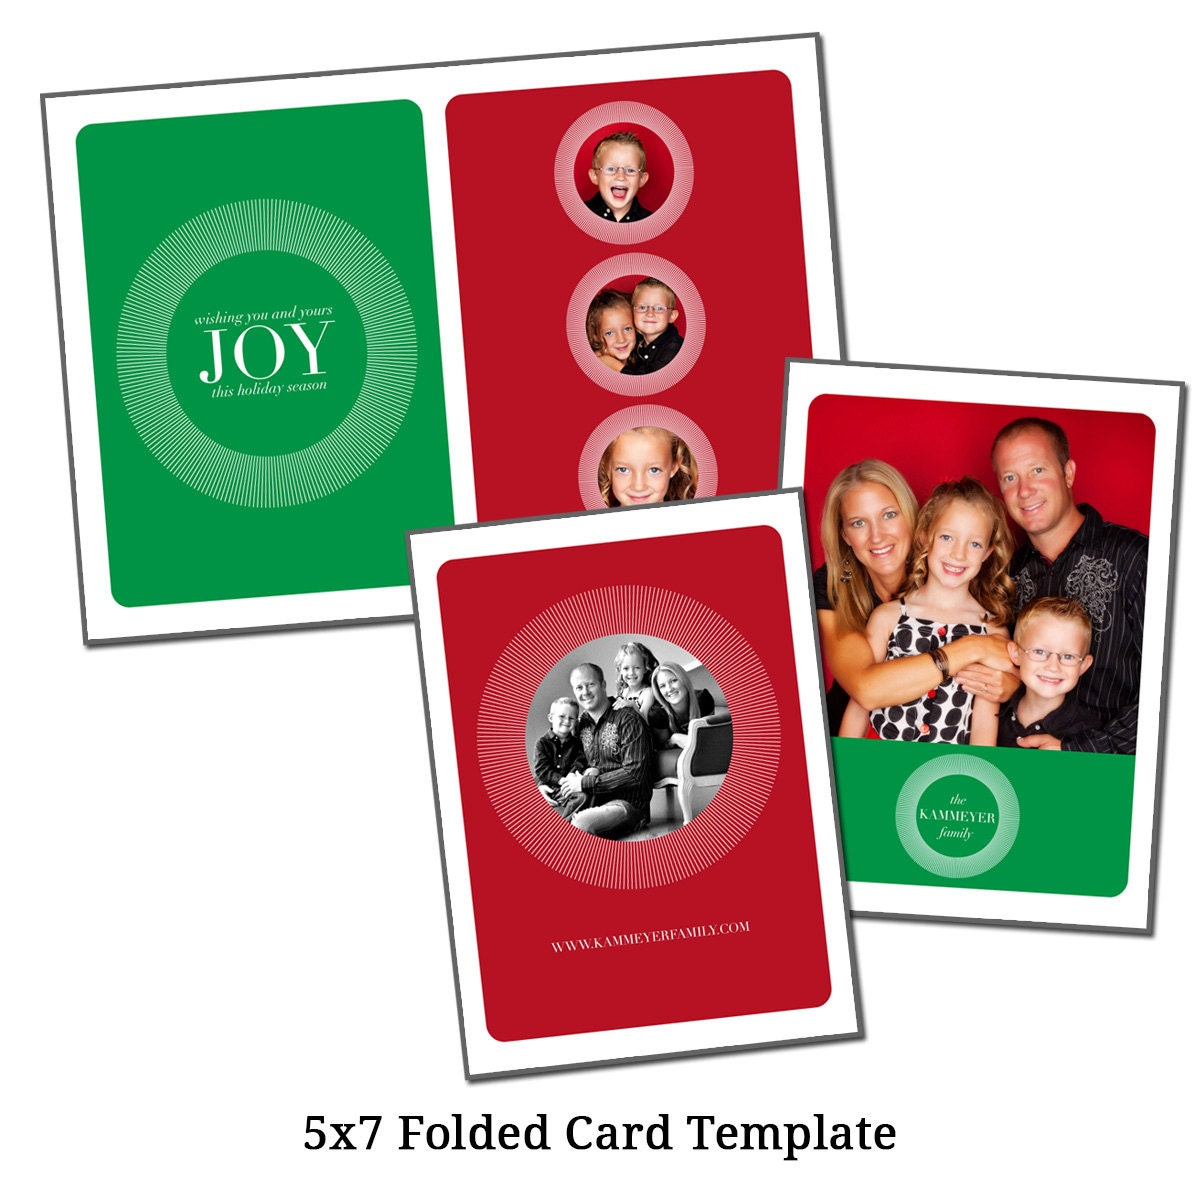 5x7 folded christmas card template holiday card by vgallerydesigns. Black Bedroom Furniture Sets. Home Design Ideas